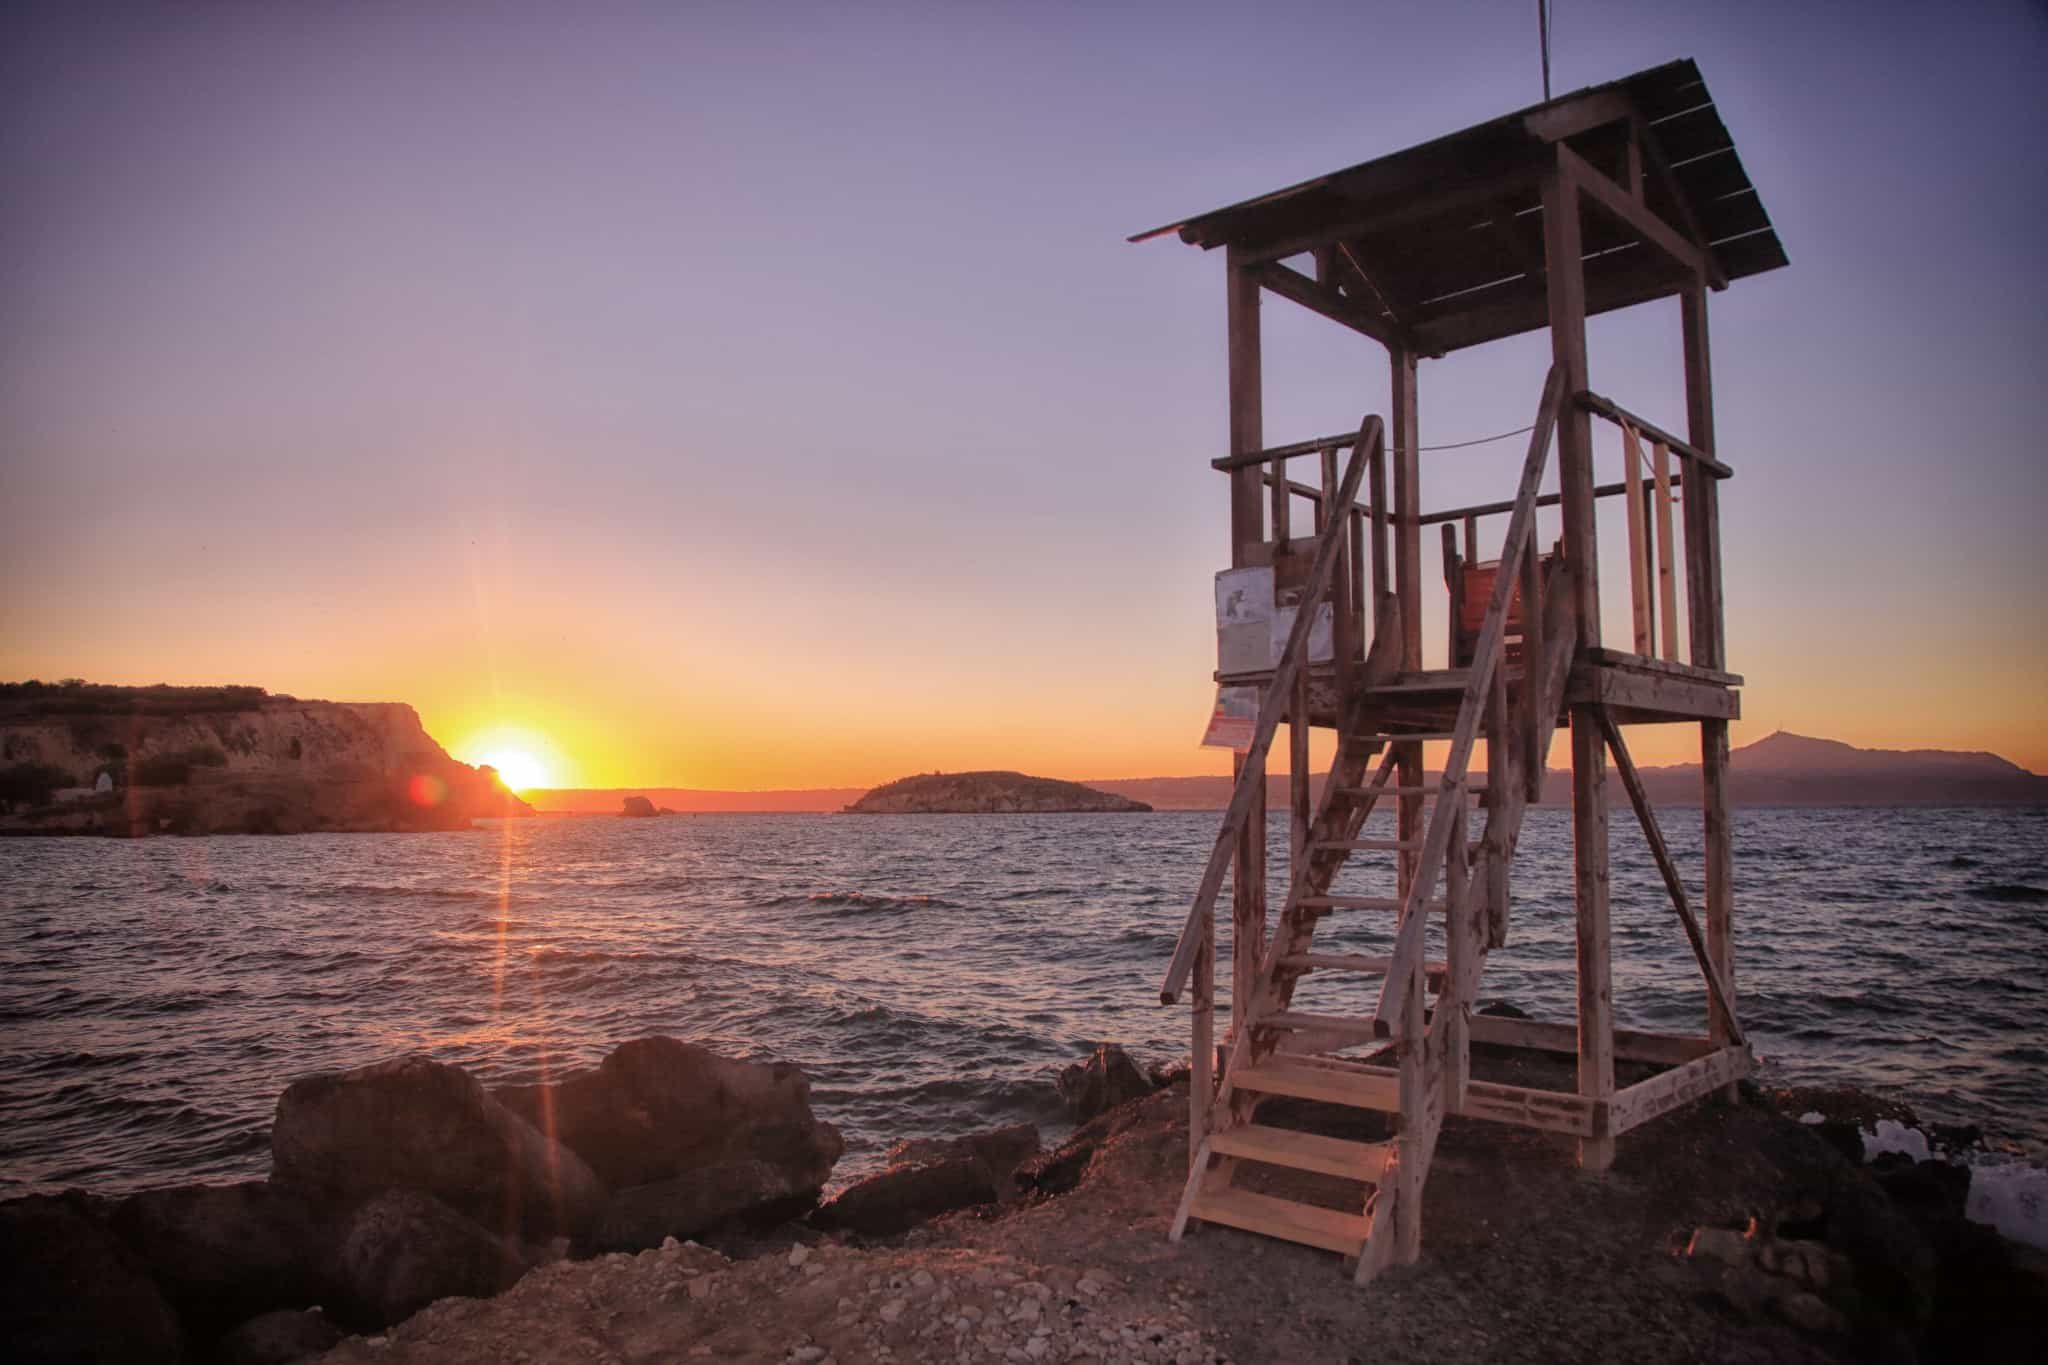 Sunset Lifeguard Station Crete